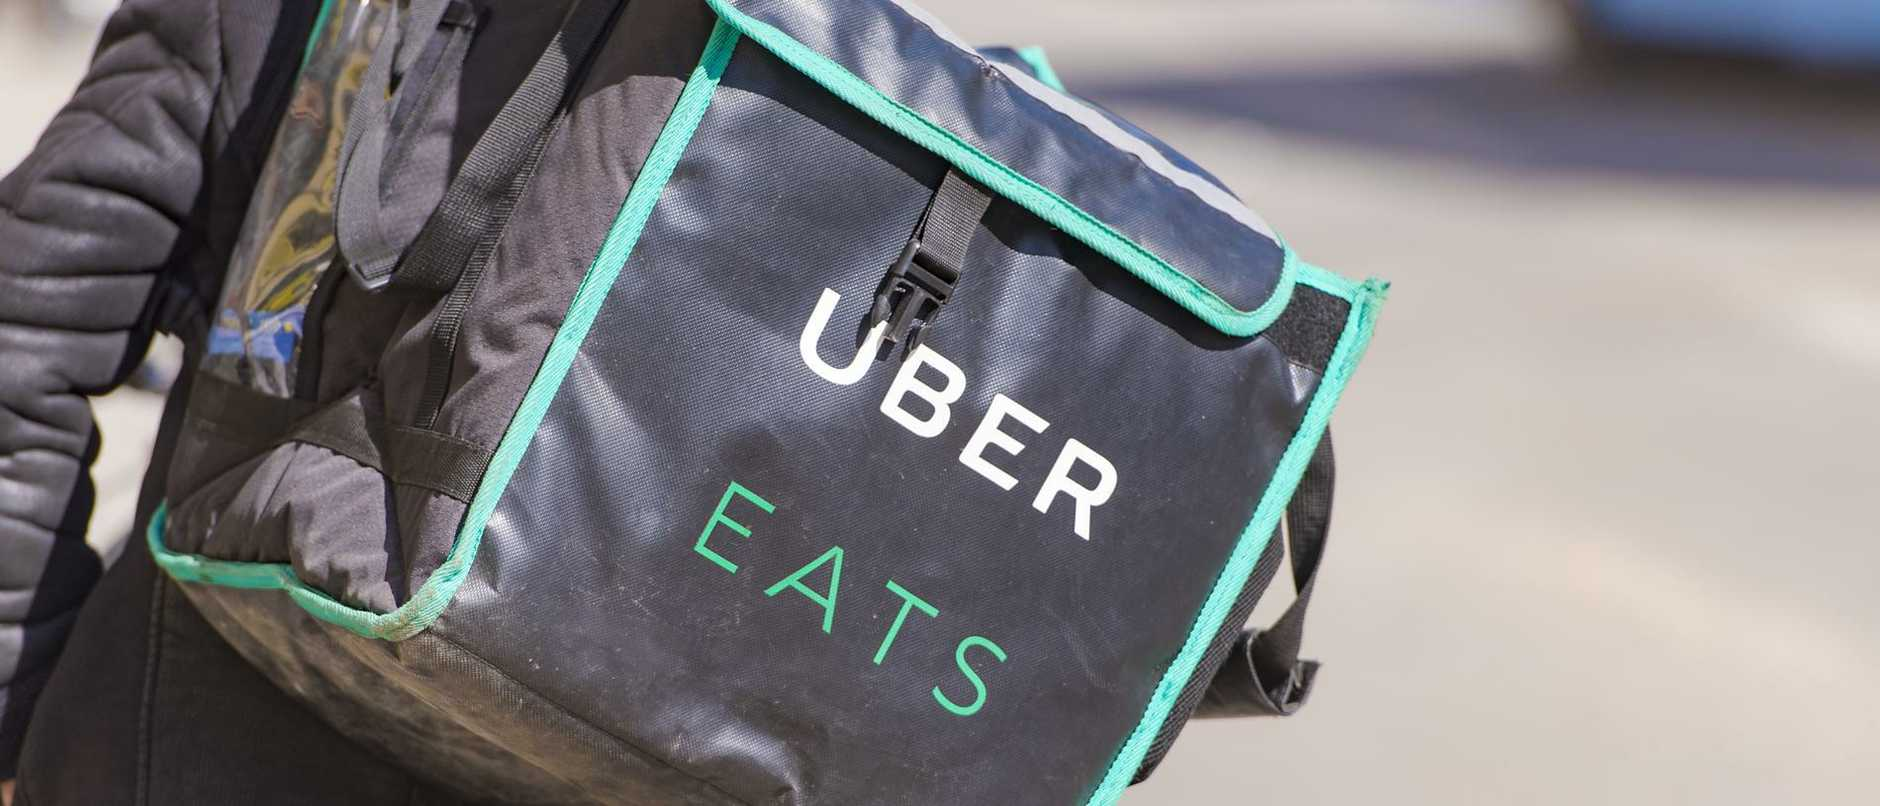 The rideshare and food delivery giant has announced a package to help restaurants and cafes stay on their feet.